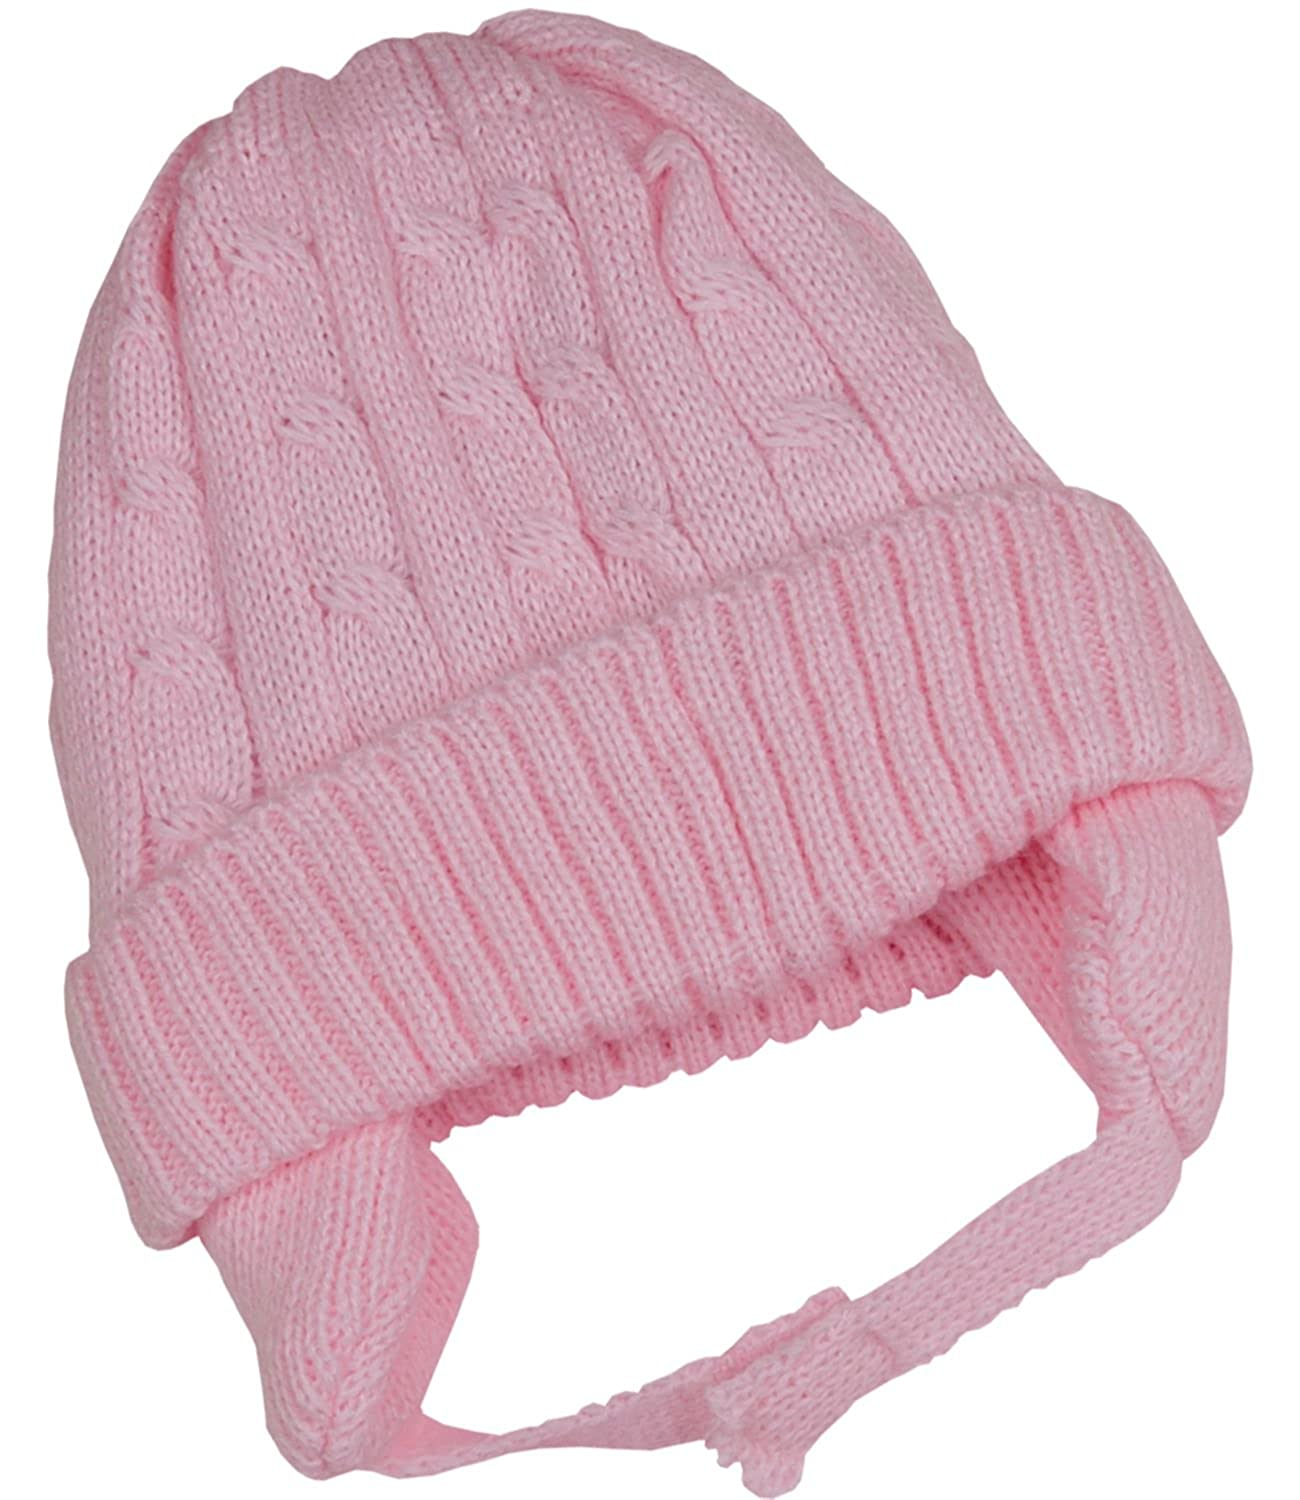 BabyPrem Baby Toddler Hat Cable Knit Ear Flap Winter Clothes Pink Blue White